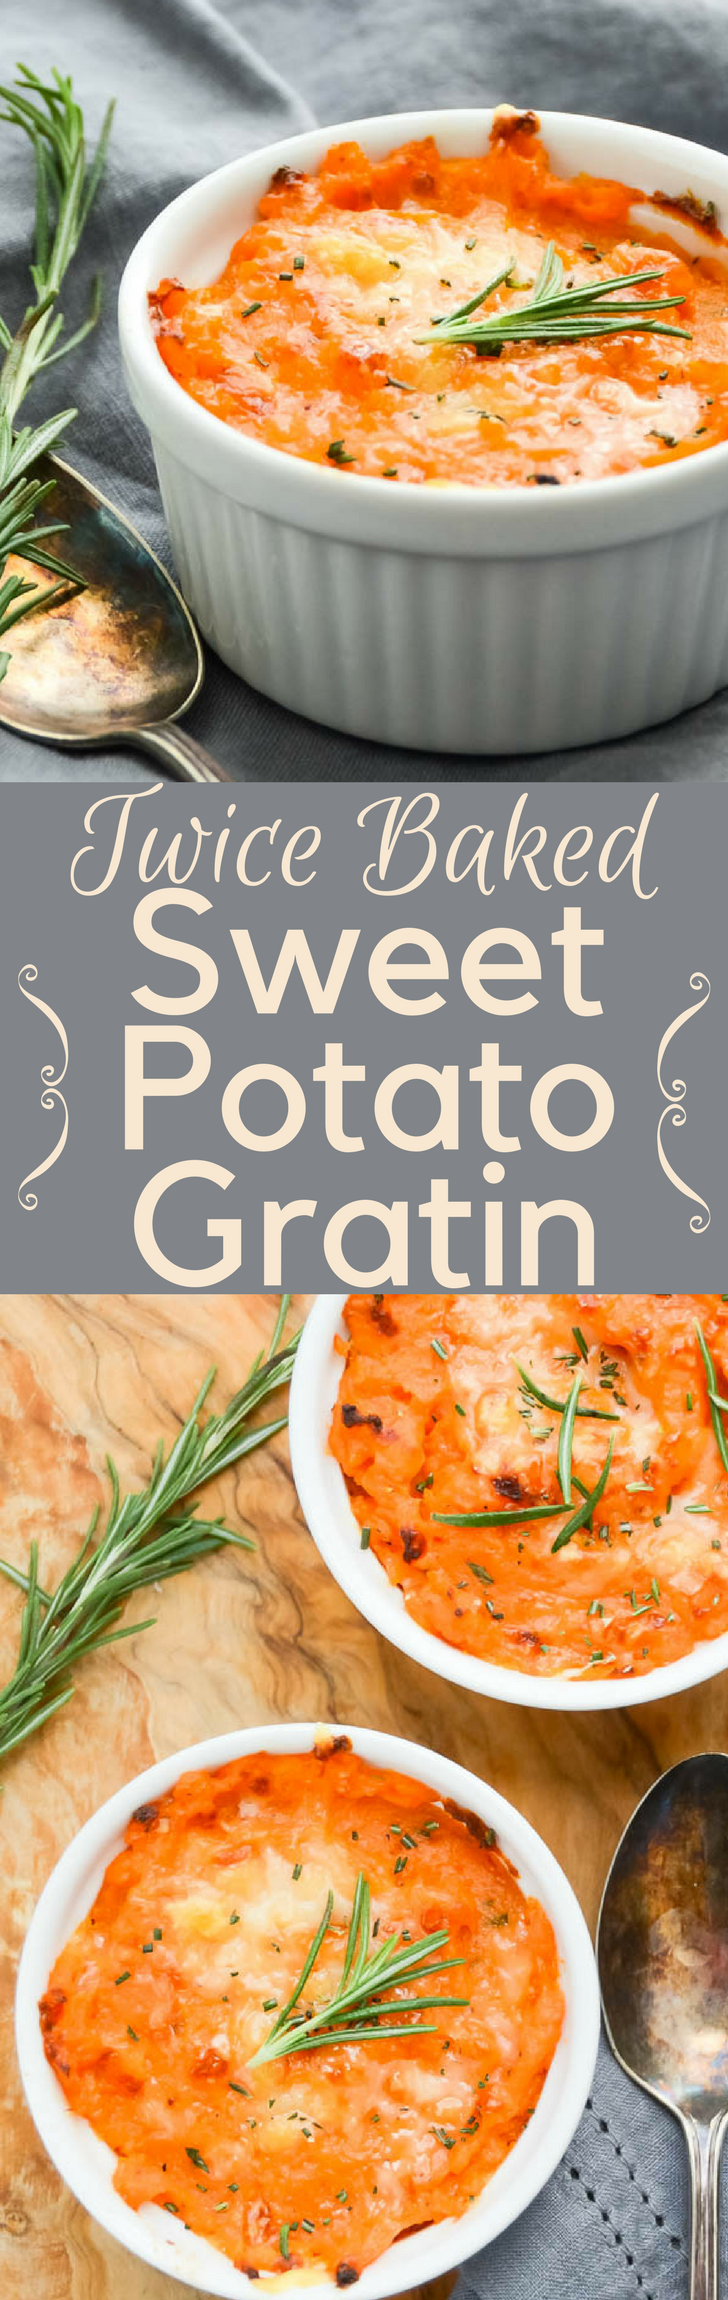 Looking for an alternative recipe for sweet potato casserole? Twice-Baked Sweet Potato Gratin is a delicious side dish w/ gruyere cheese. No marshmallows!